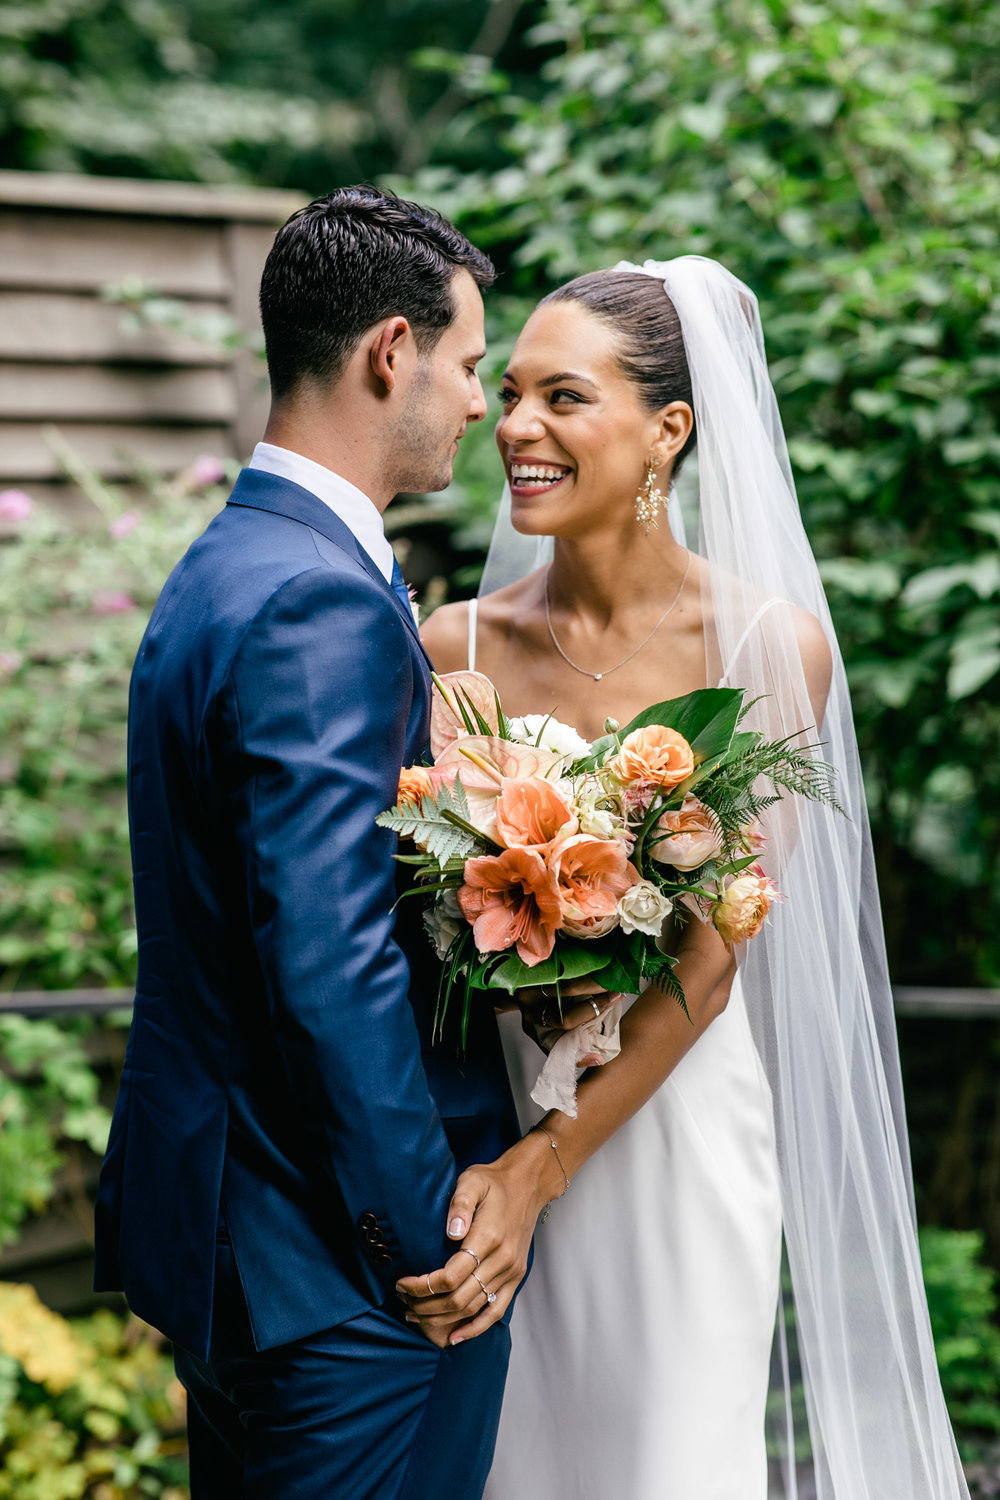 photography-wedding-weddings-natural-candid-dock 5 dc-washington dc-philadelphia-mixed race-editorial-modern-fine-art-041.JPG